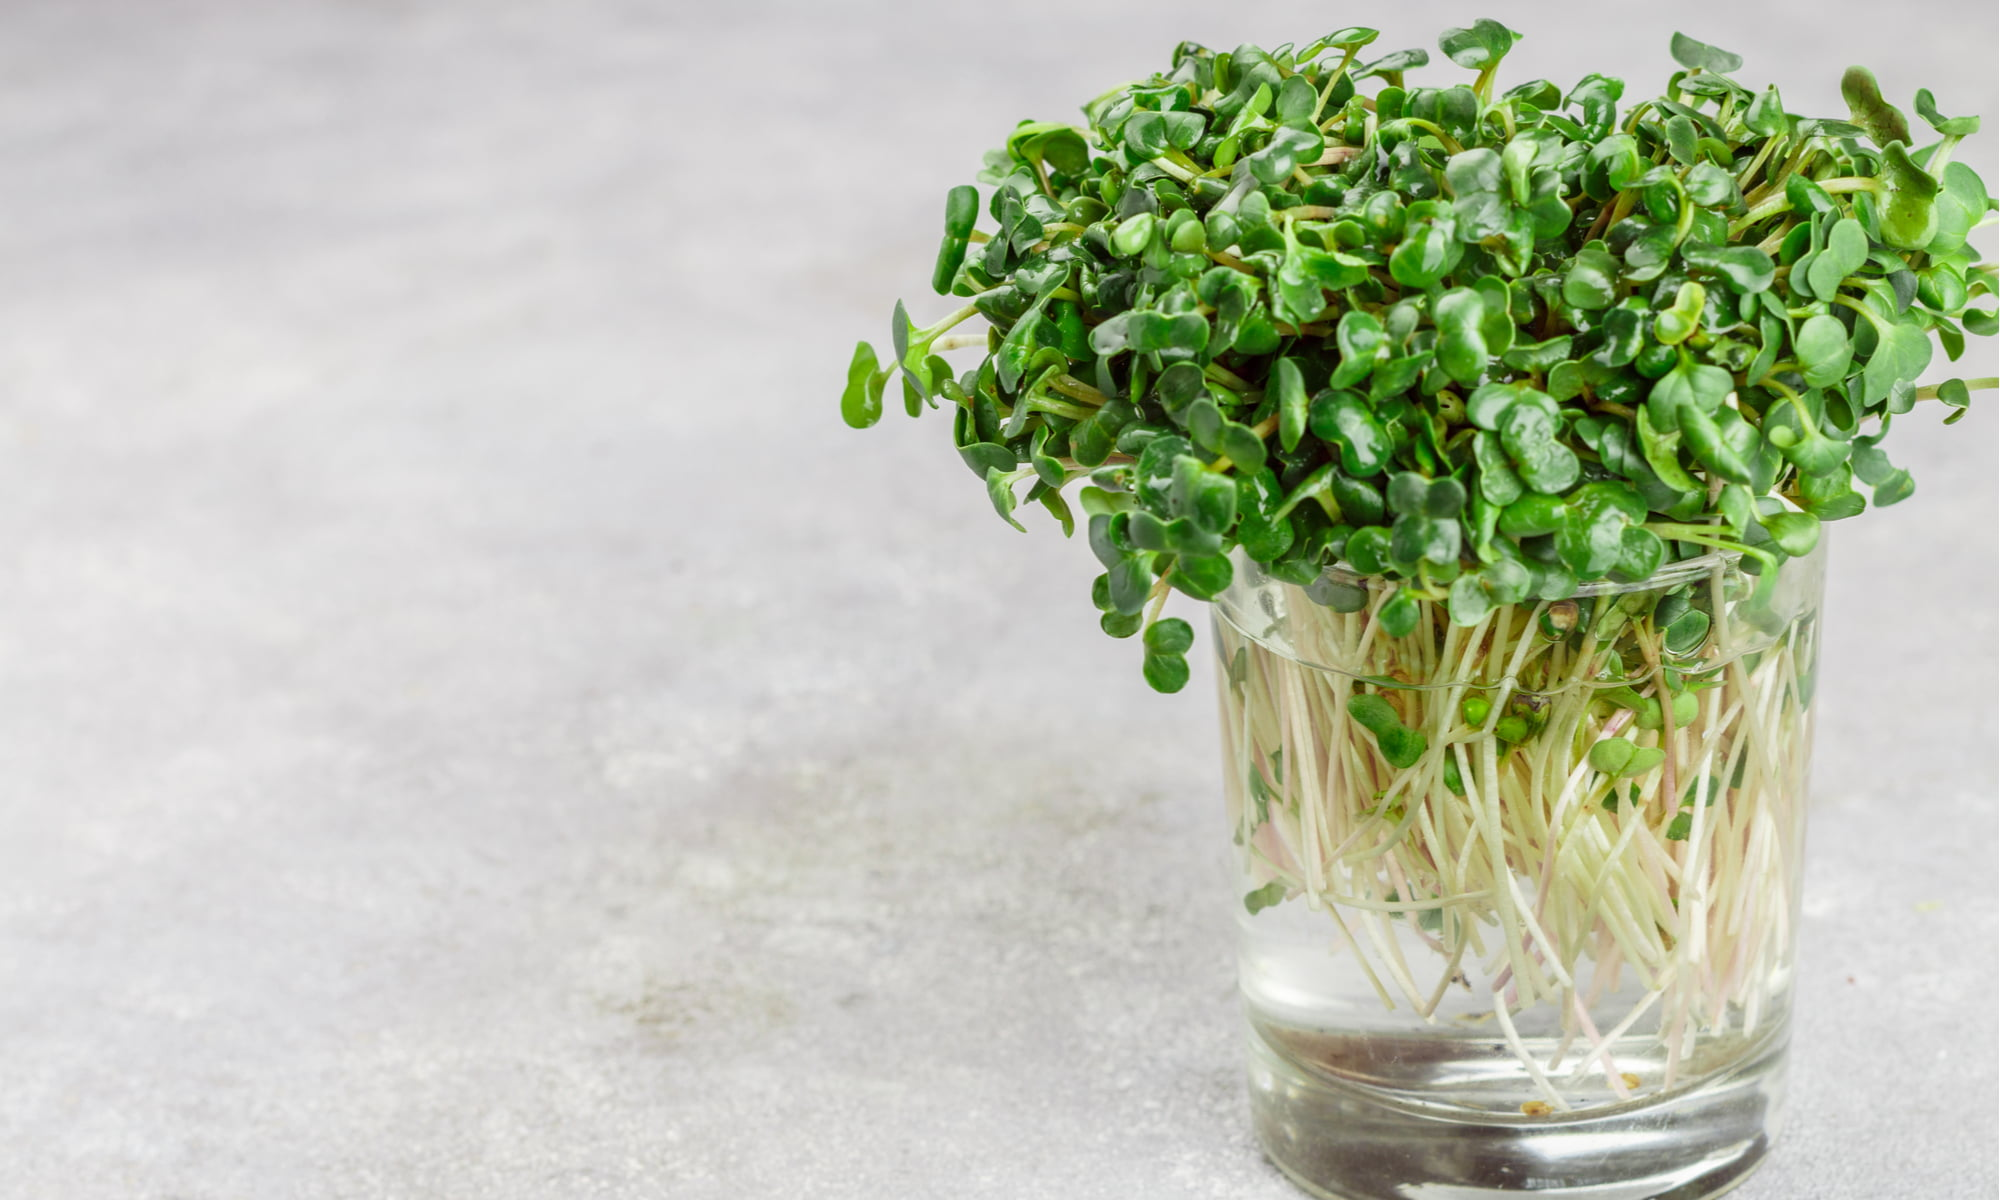 Microgreens: Are They Worth The Extra Penny?